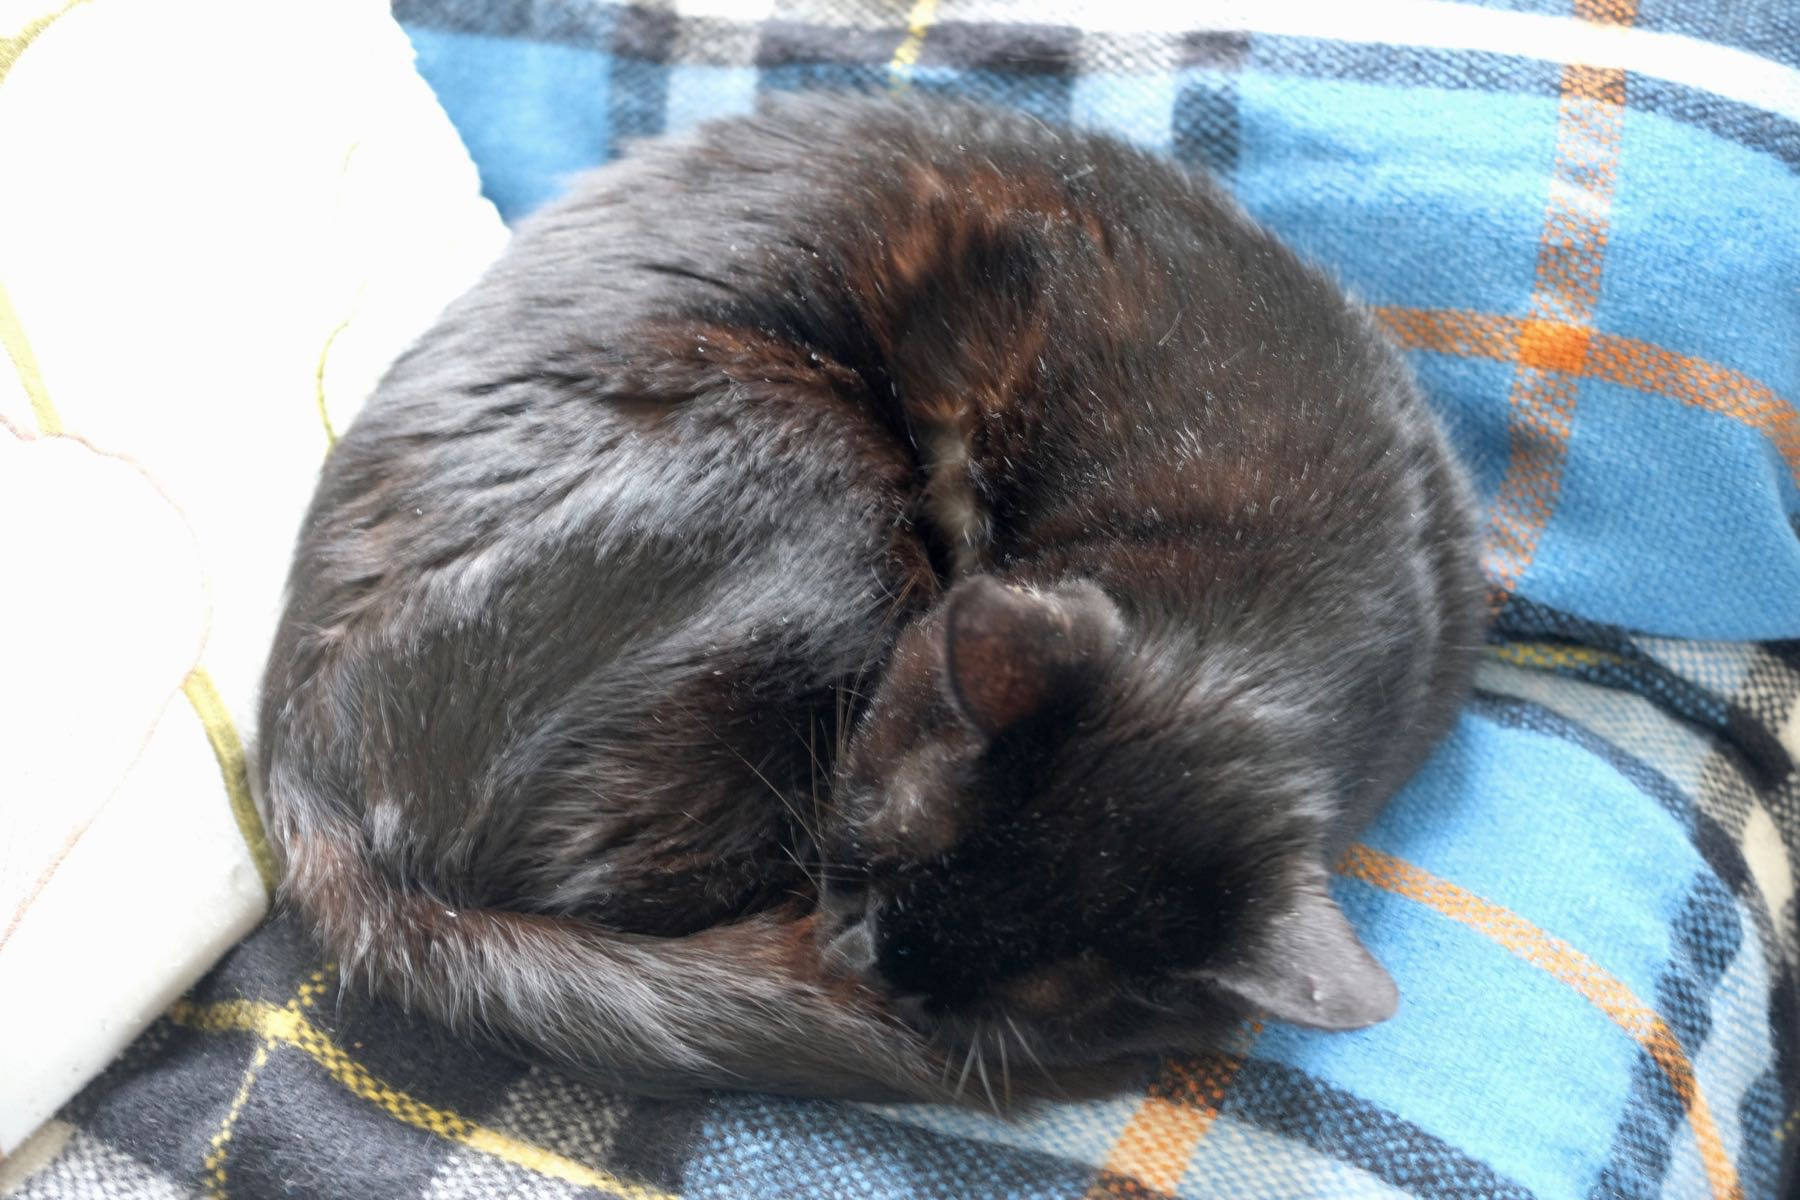 Black cat curled up on a couch.